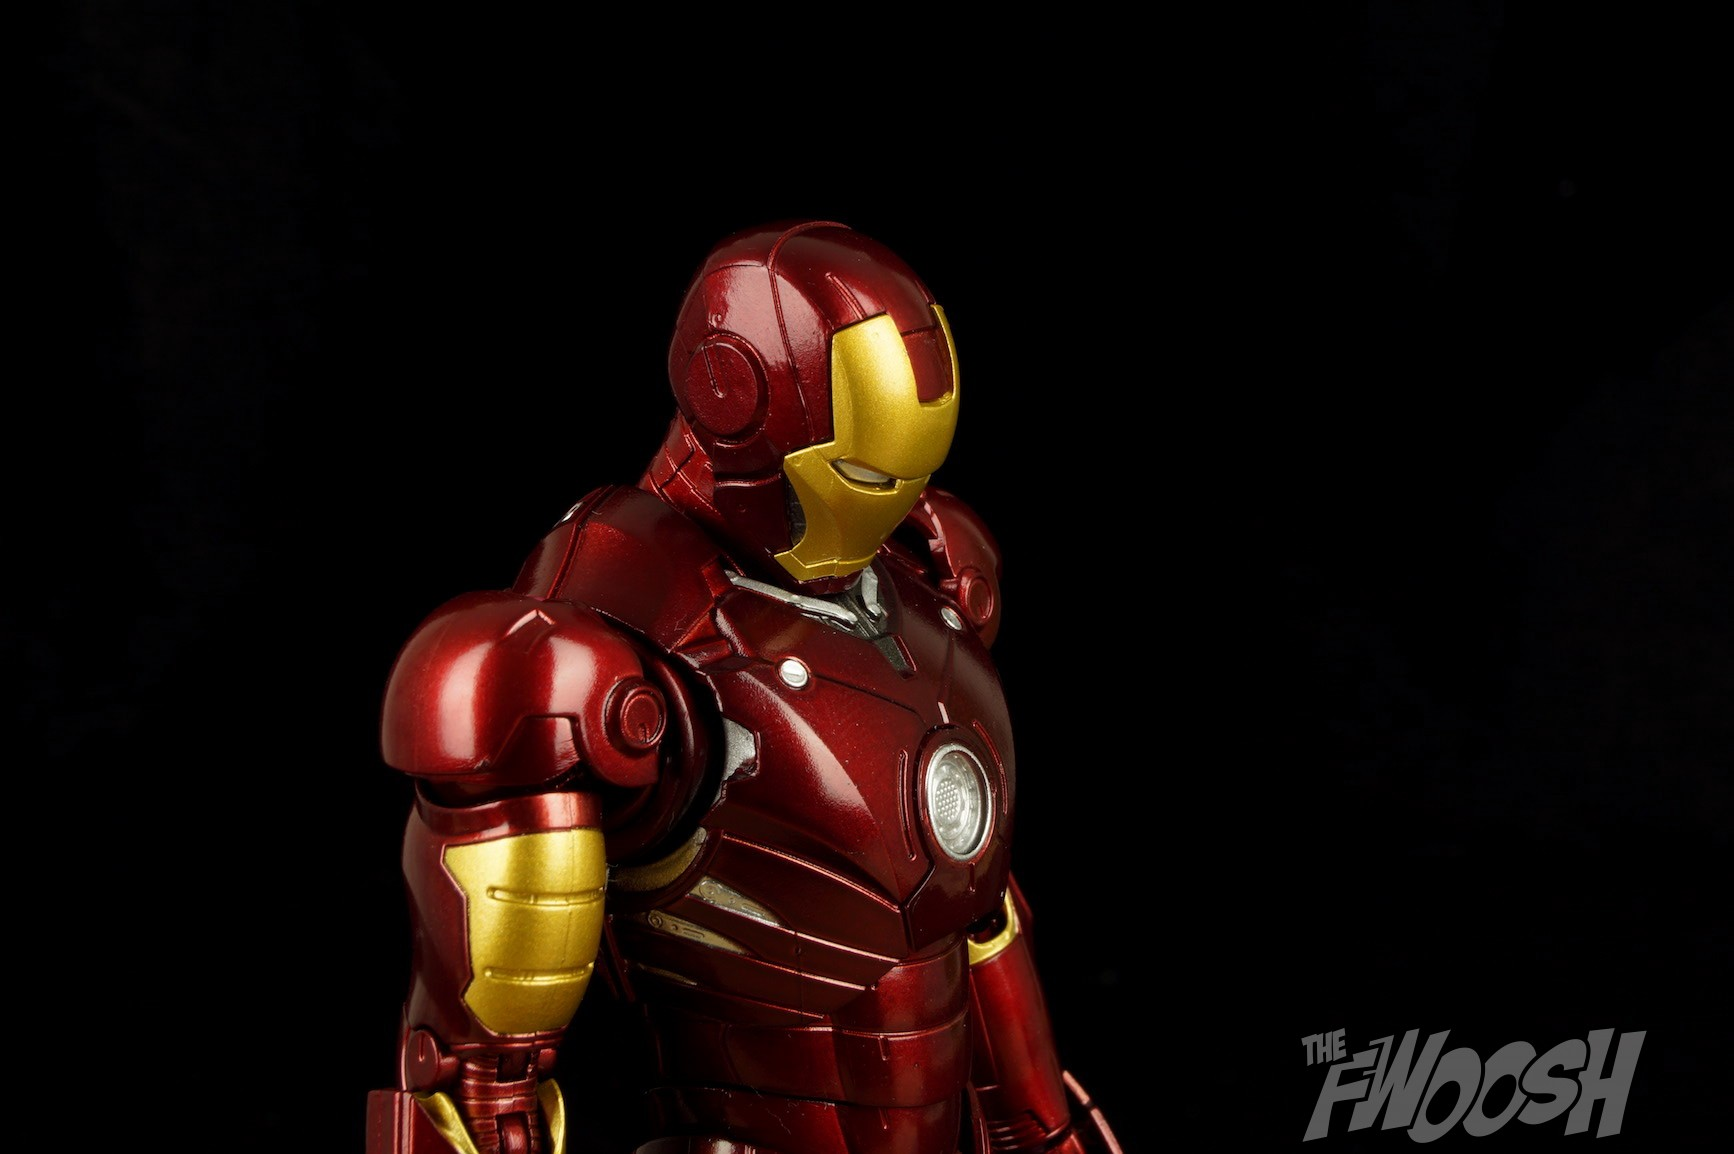 Review: Bandai's S.H. Figuarts Iron Man Mark 3 | The Fwoosh